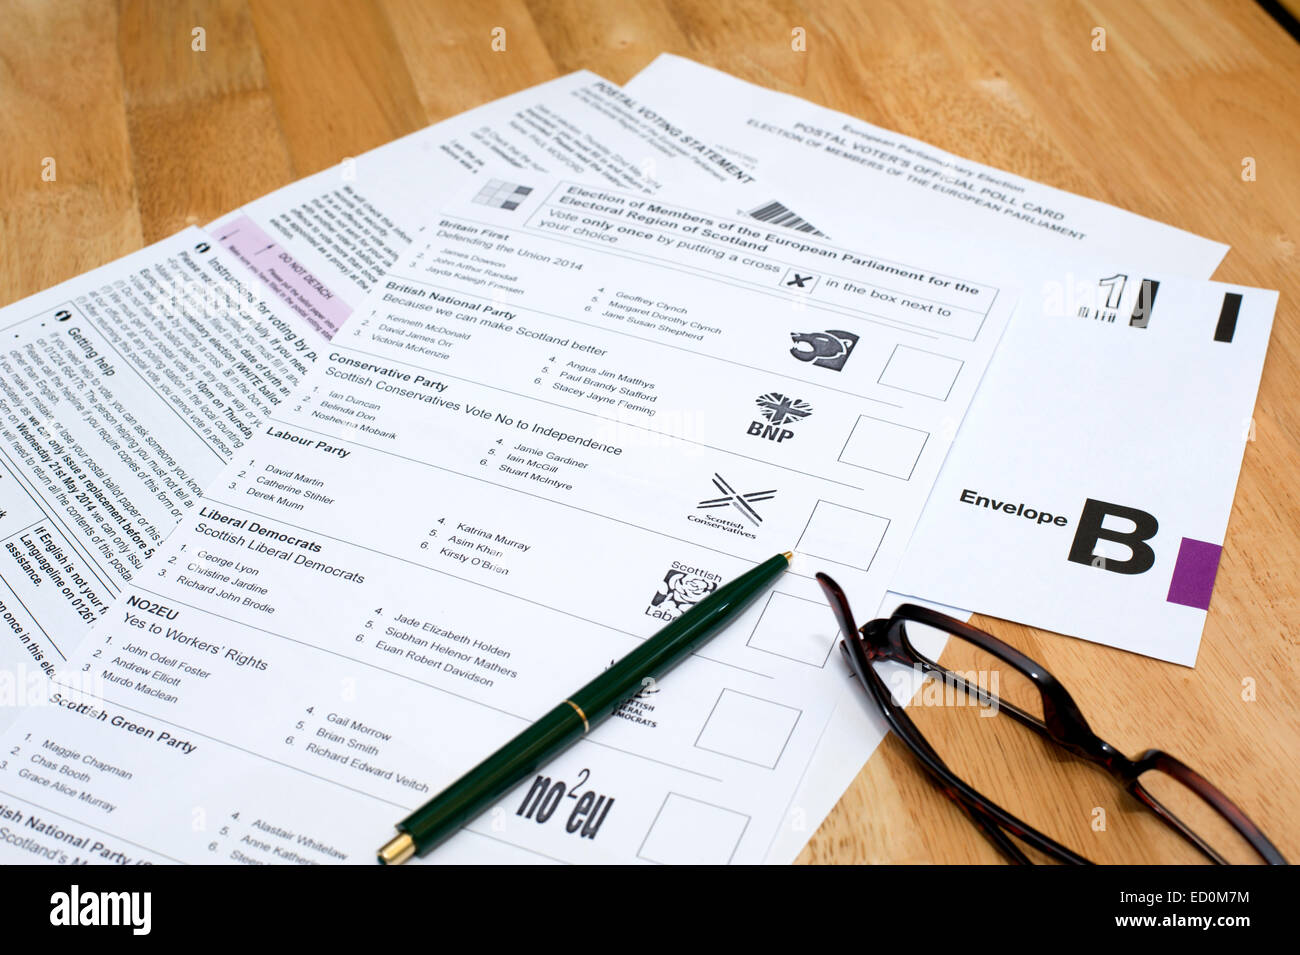 Completing and preparing a postal vote for sending off - Stock Image